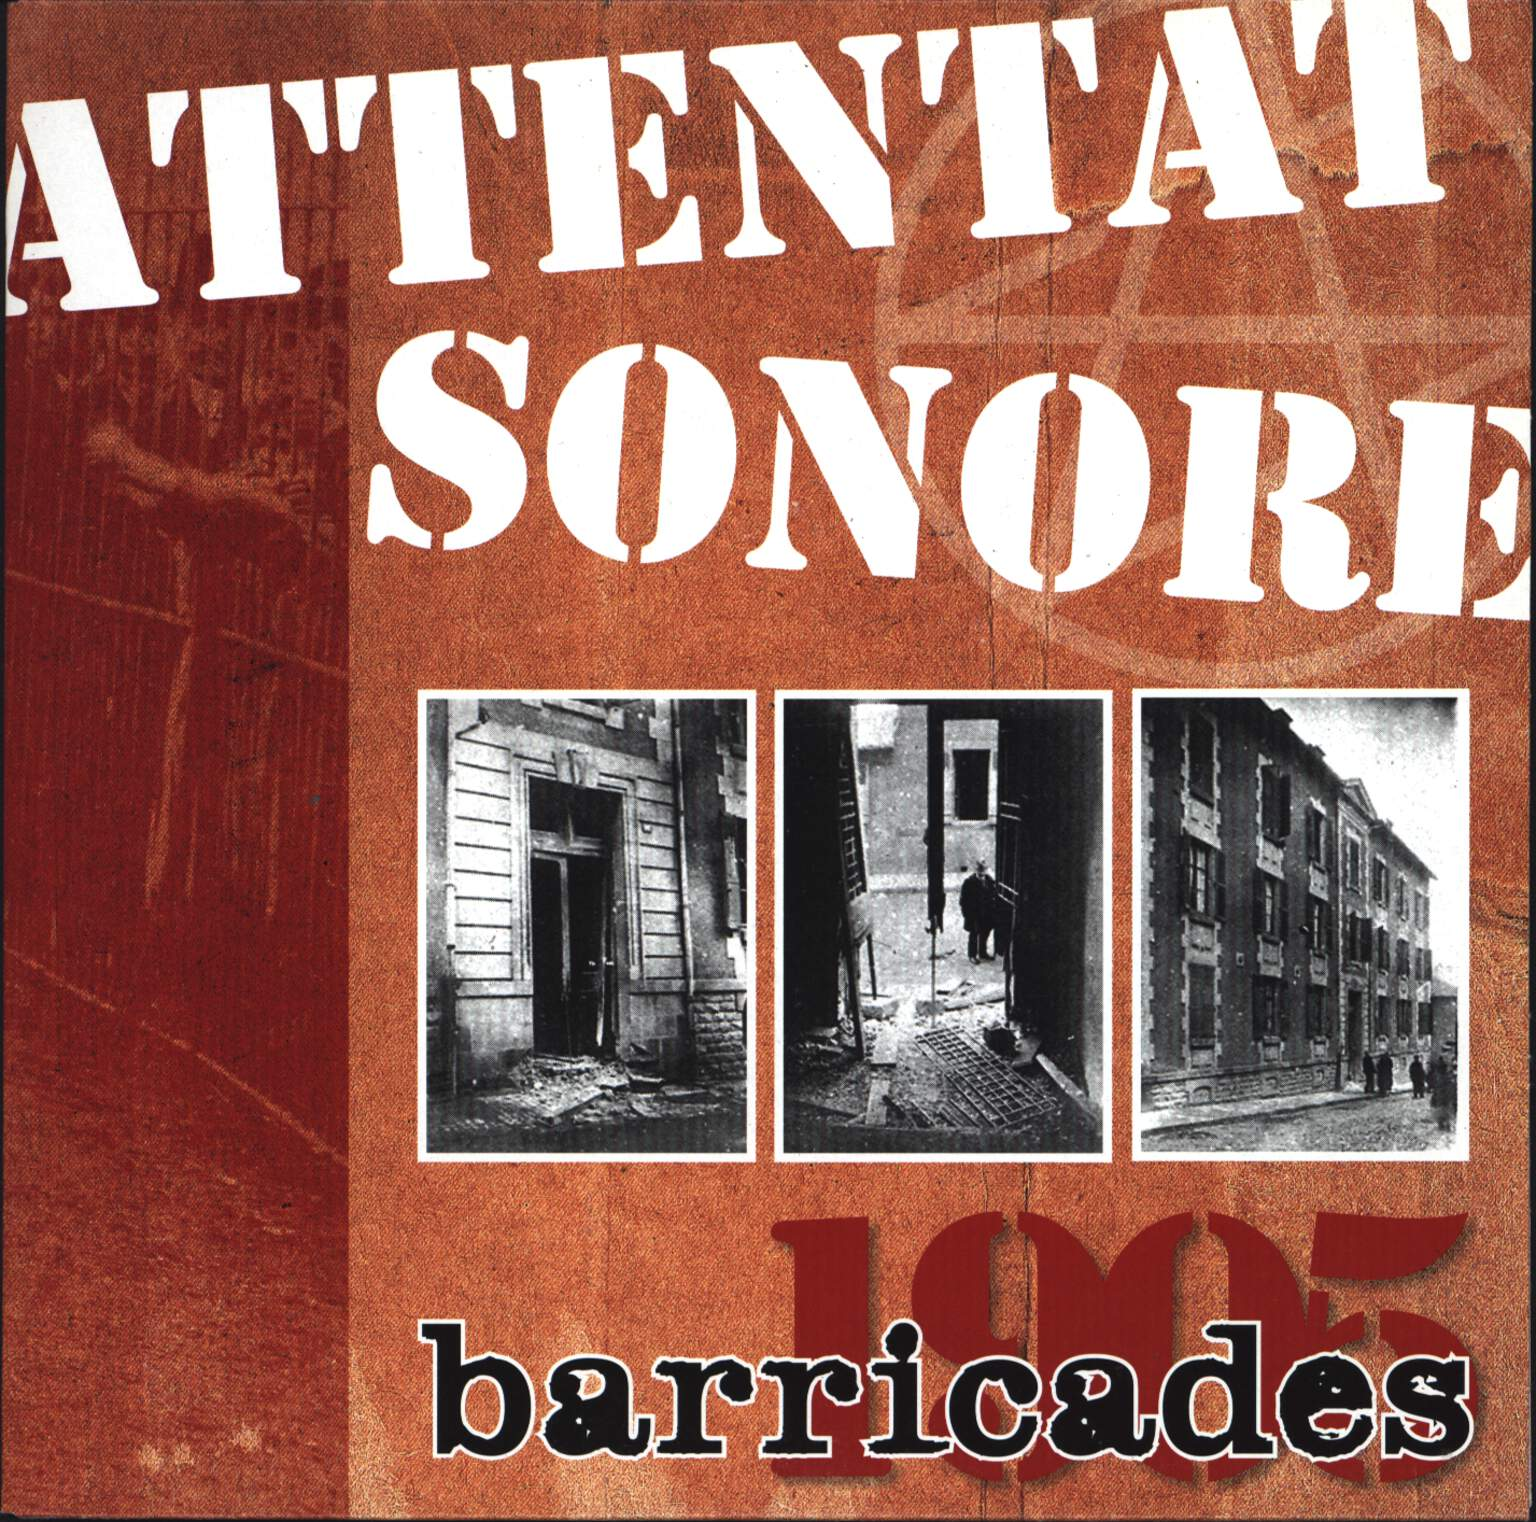 "Attentat Sonore: Barricades 1905, 7"" Single (Vinyl)"